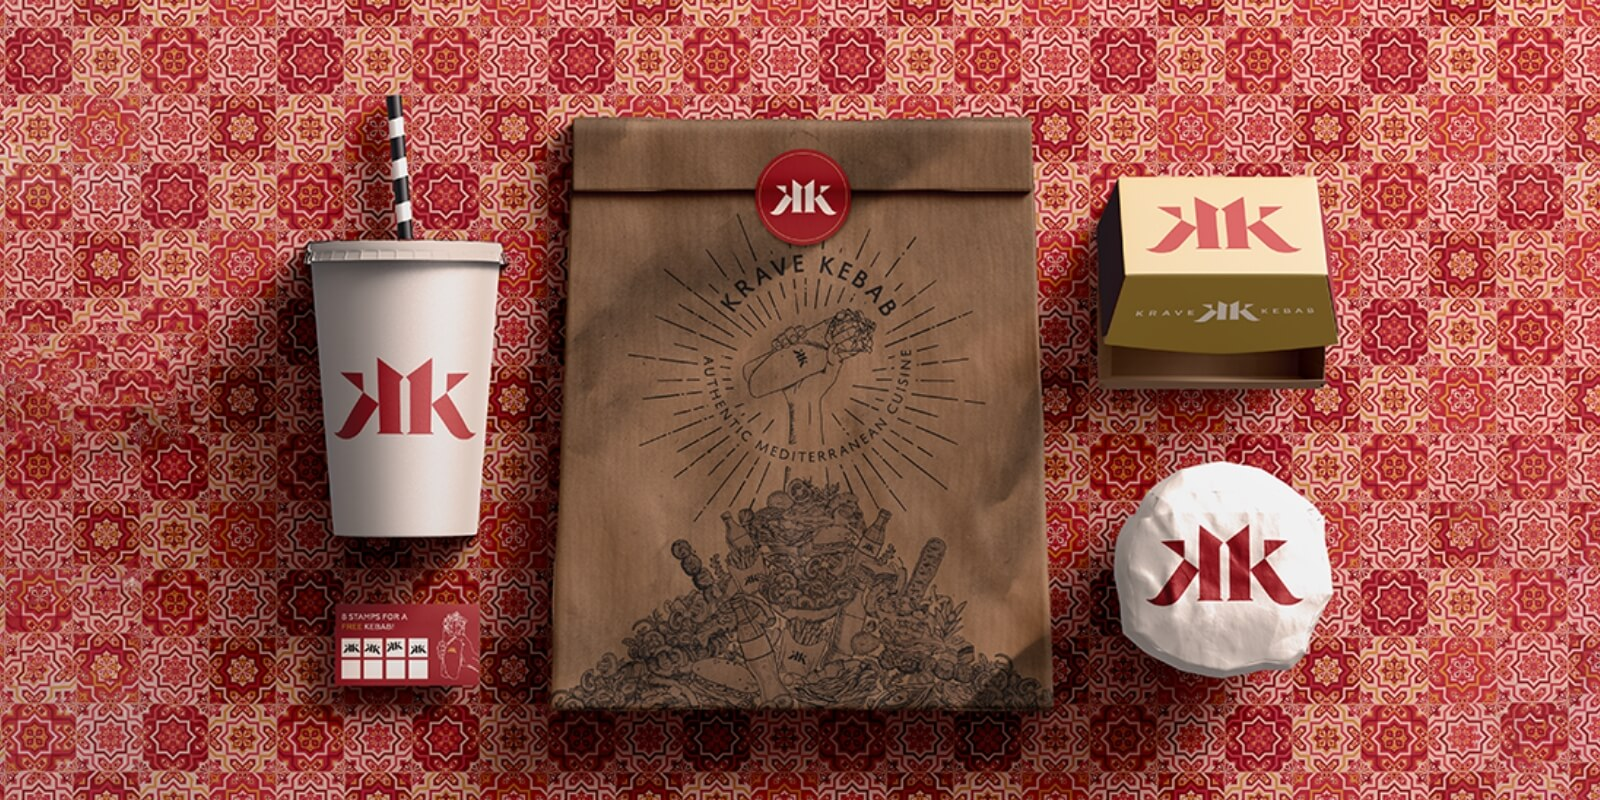 Product Packaging for Turkish Restaurant